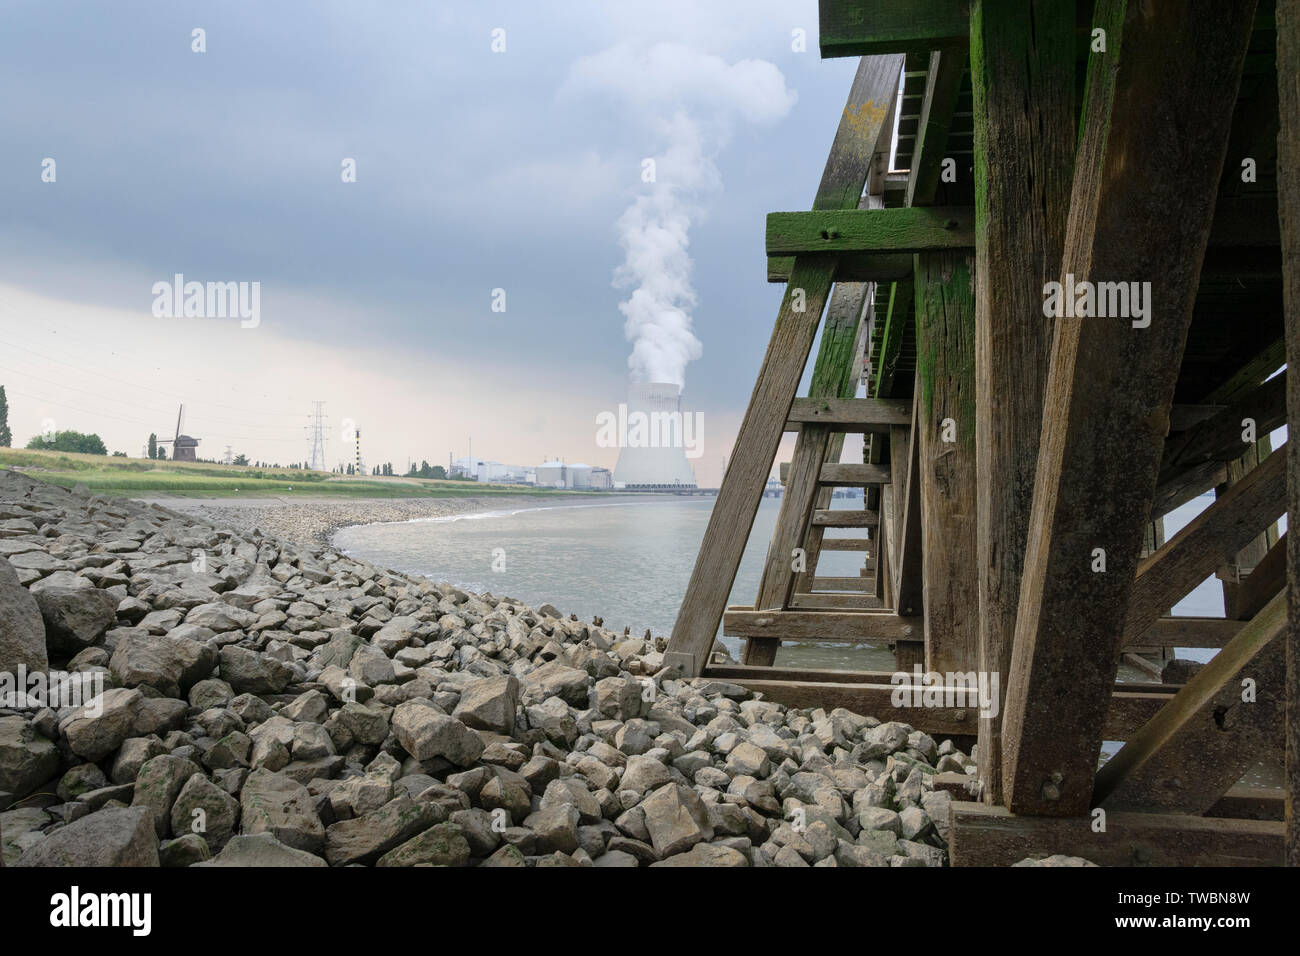 The cooling towers of Doel with left in the picture an old windmill - Stock Image